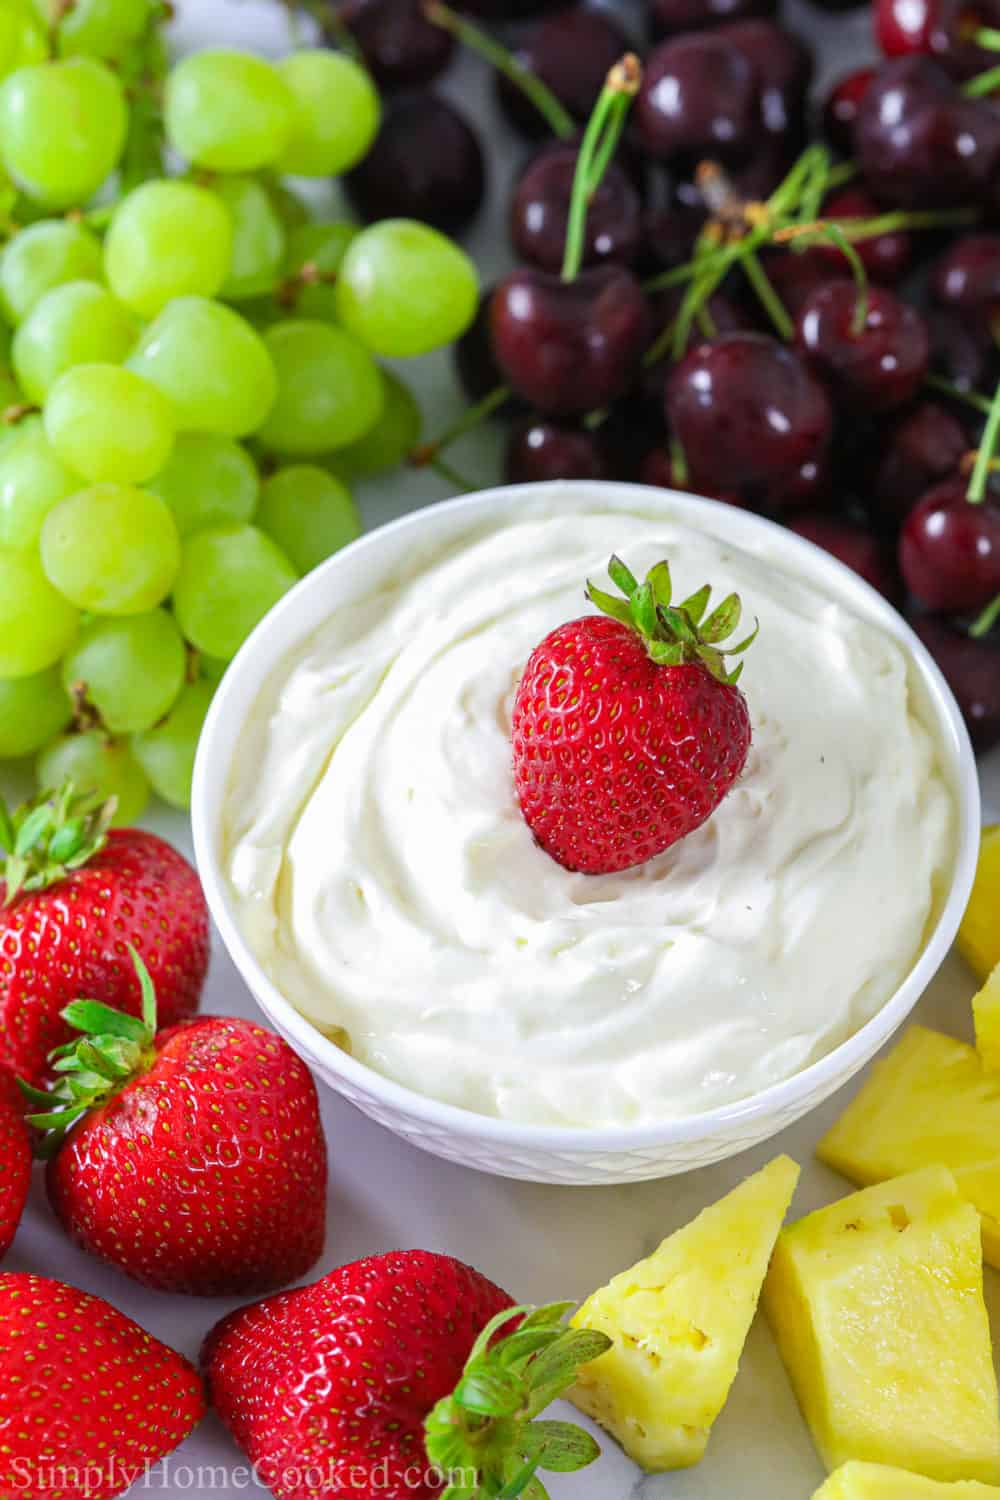 Cream cheese fruit dip in a small white bowl with a strawberry dipped into it and grapes, cherries, and pineapple beside it